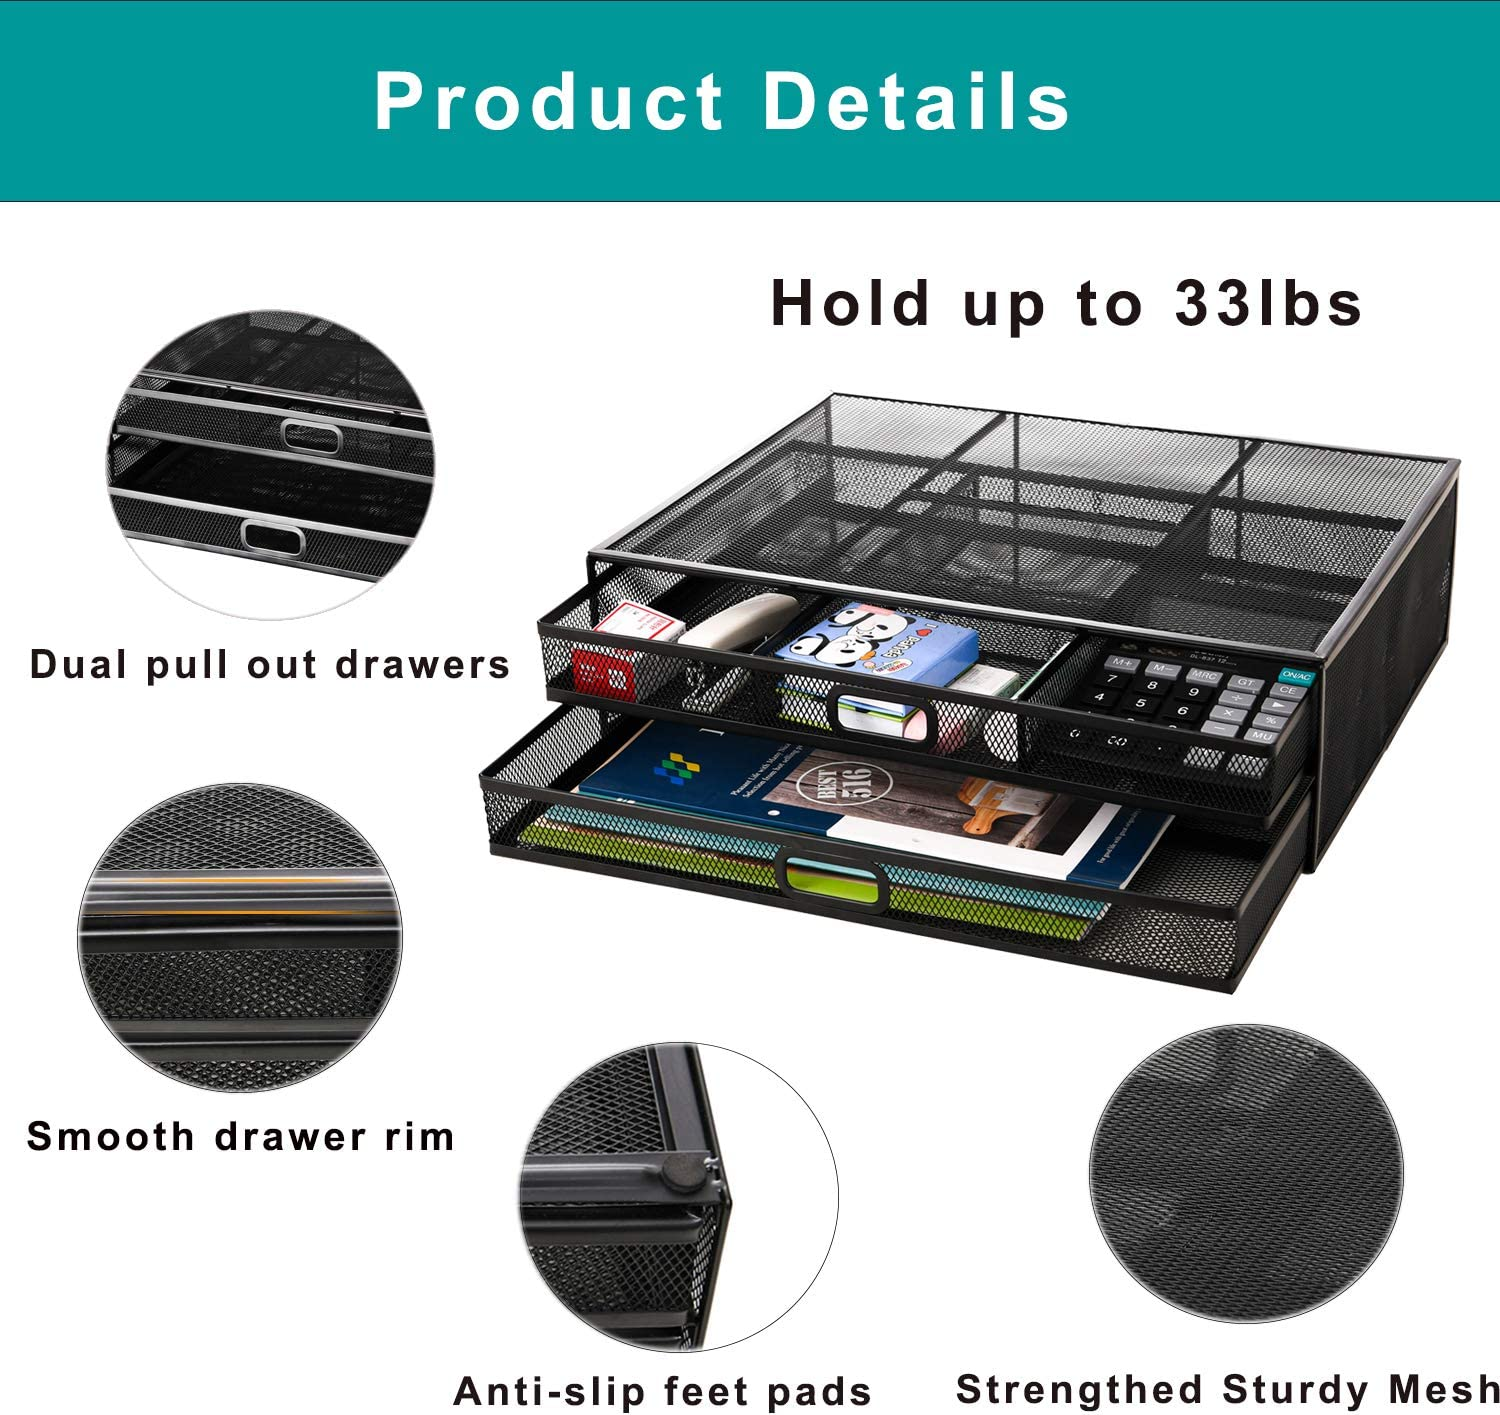 Monitor Stand Riser with Drawer - Metal Mesh Desk Organizer with Dual Pull Out Storage Drawer, Office Supply for Computer, PC, Laptop, Printer, Notebook, iMac (Black) : Office Products